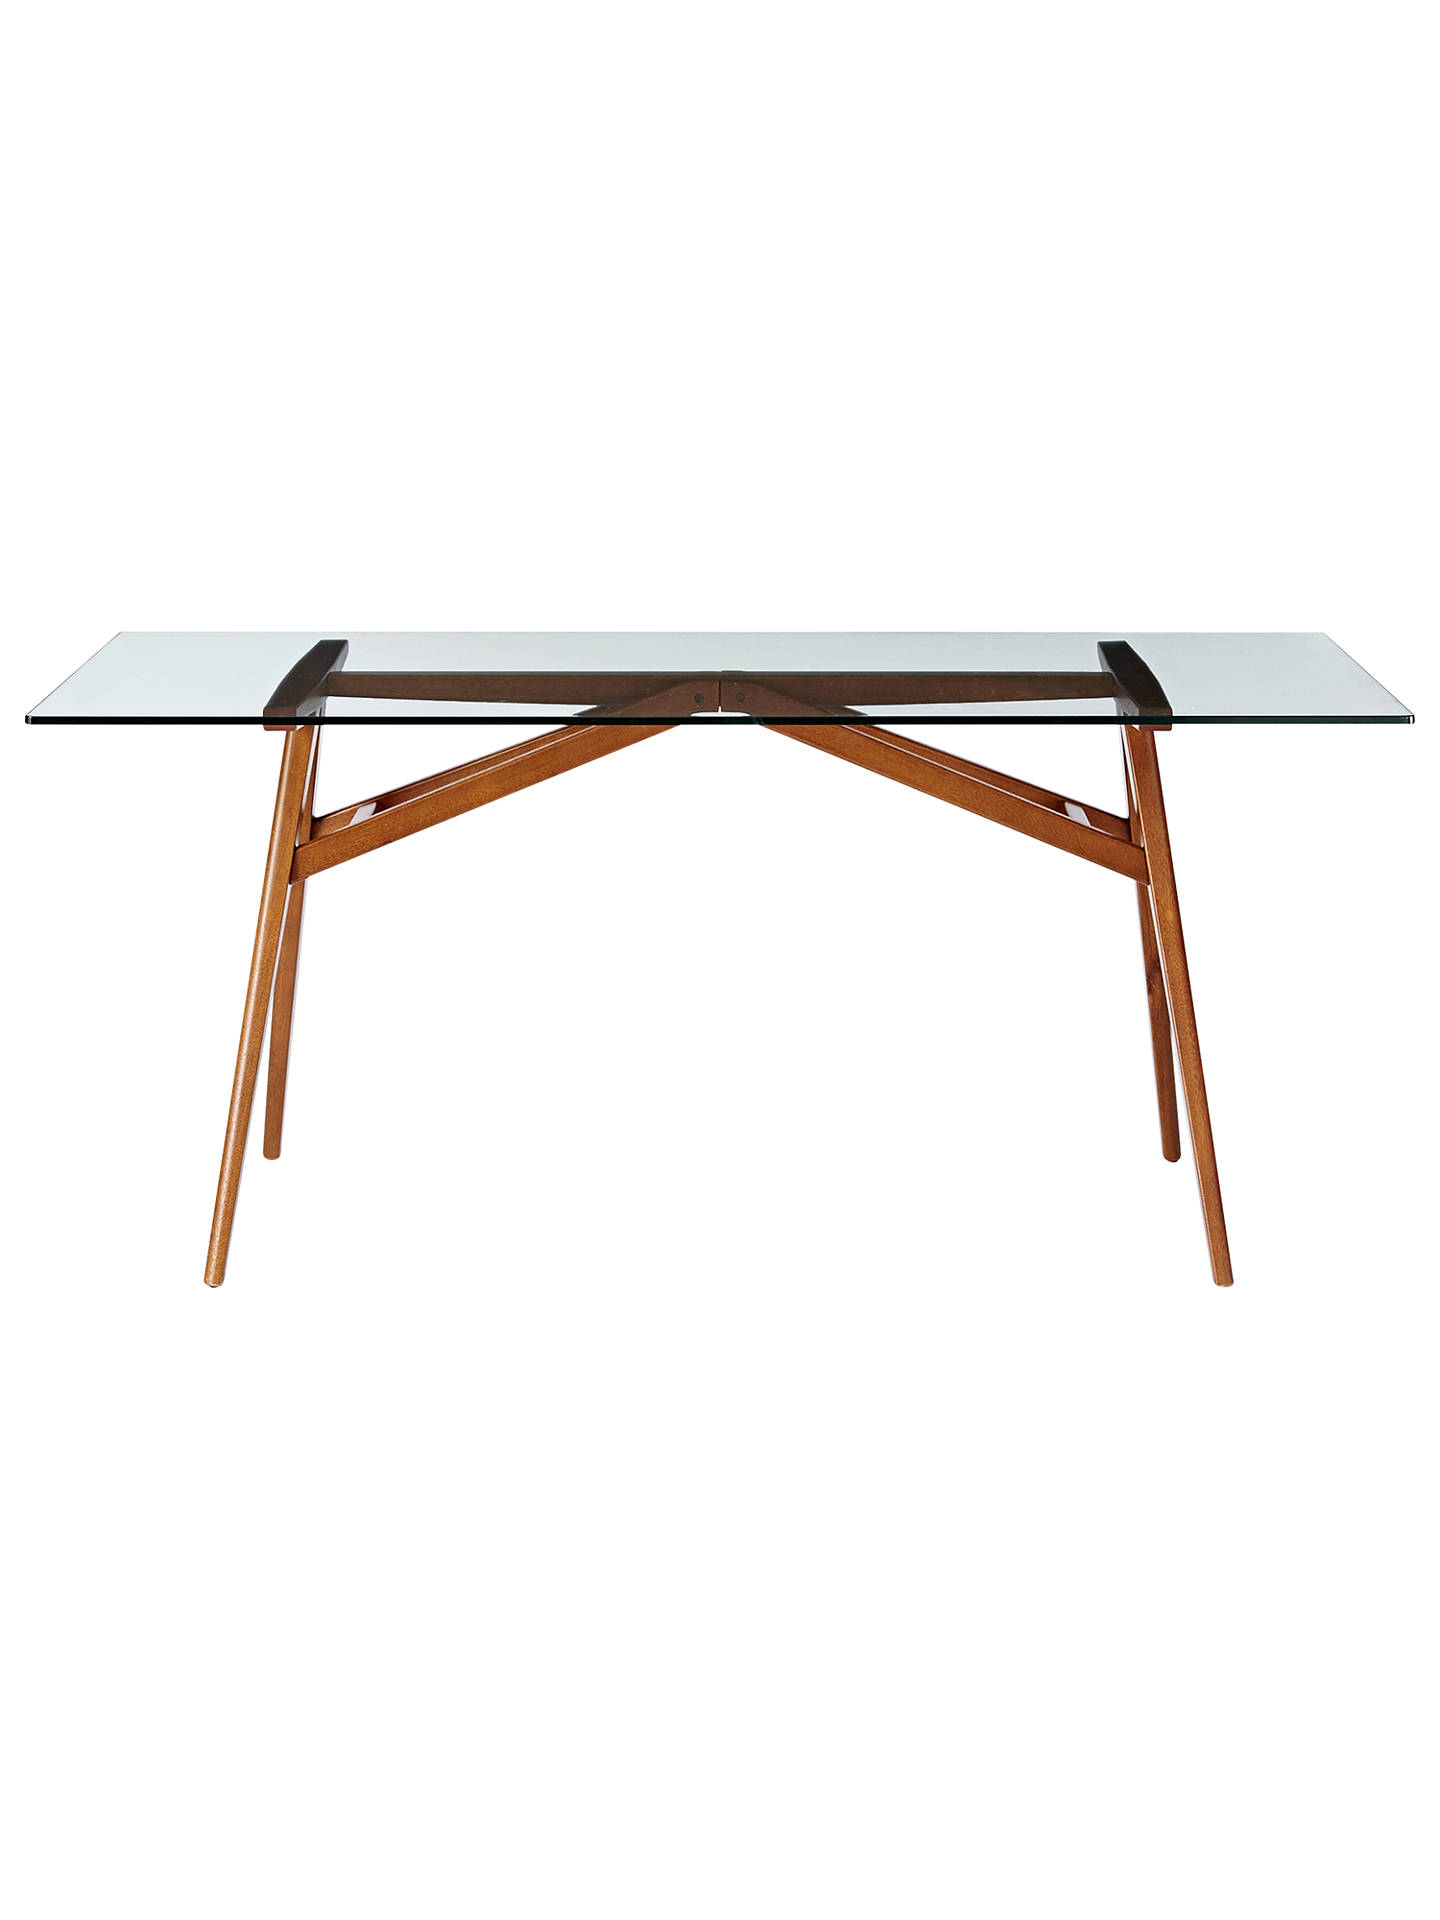 West Elm Jensen Dining Table At John Lewis Partners - West elm jensen dining table